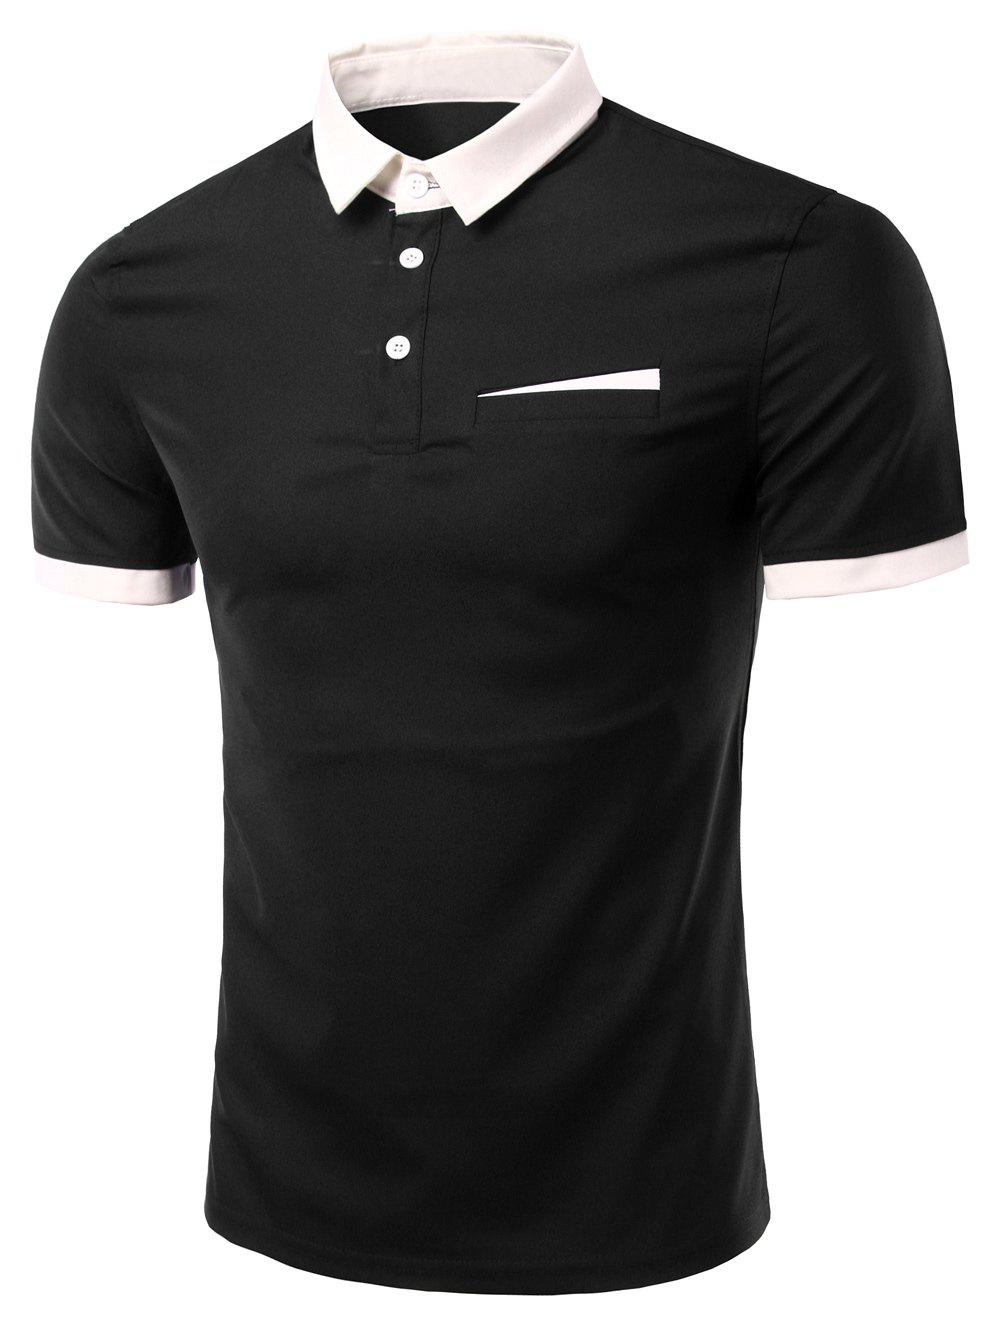 Men's Fashion Turn-down Collar Solid Color Short Sleeves Polo T-Shirt - BLACK L